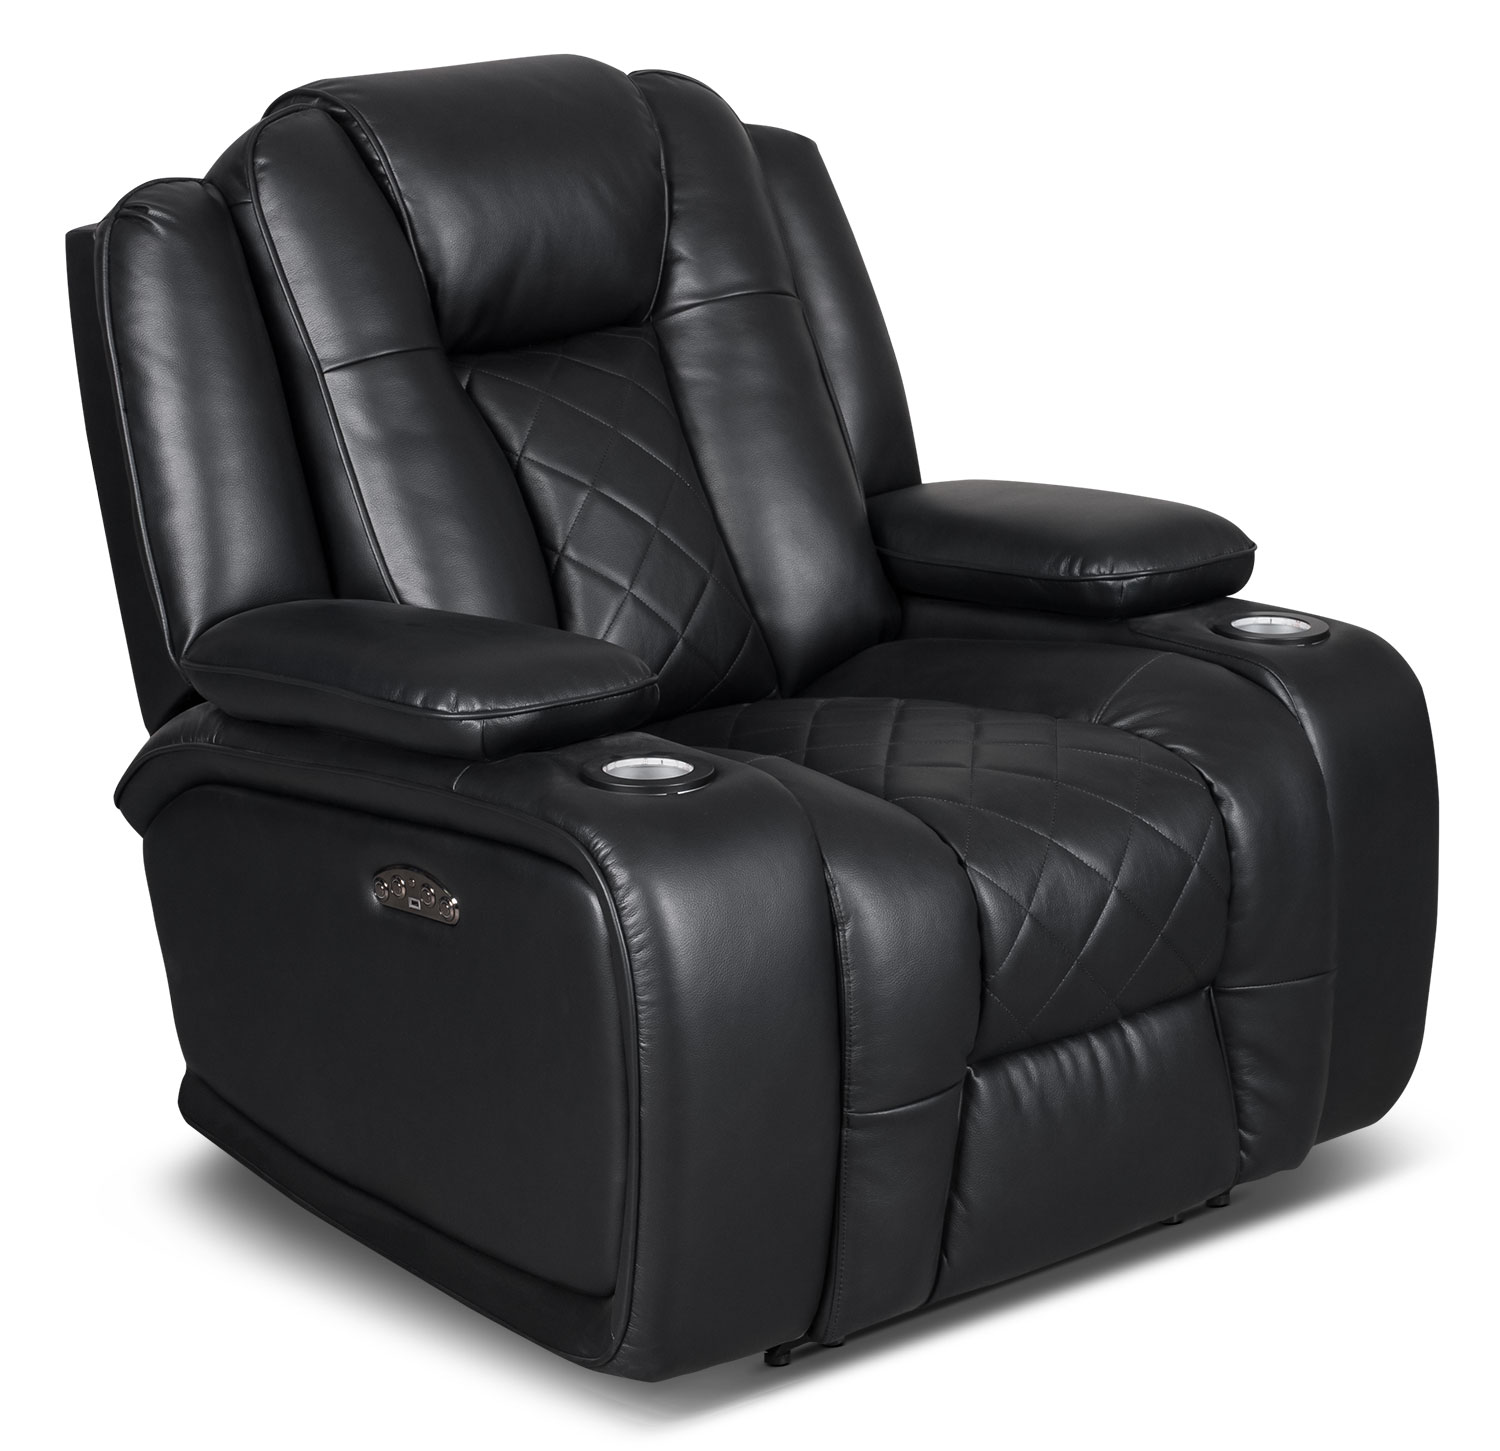 Power Reclining Chairs Lonzo Leather Look Fabric Power Reclining Loveseat Black